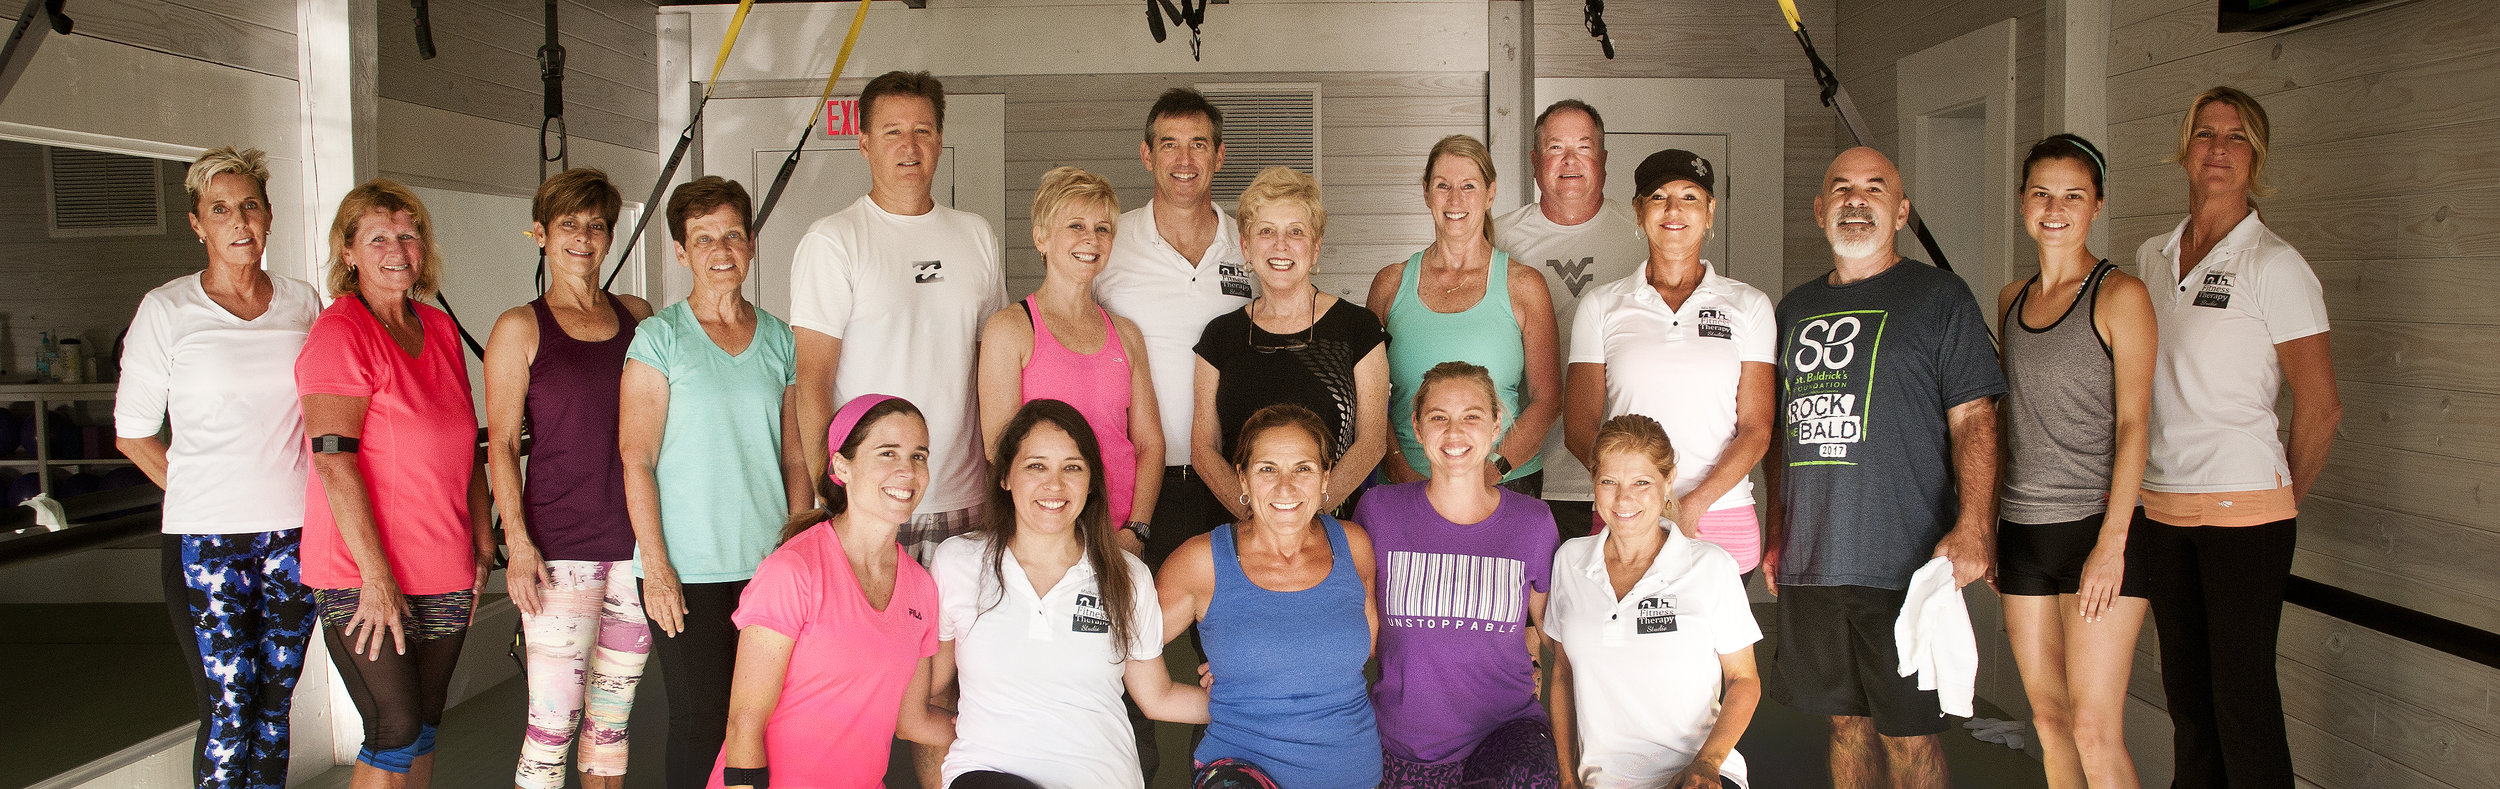 Fitness Therapy gym members